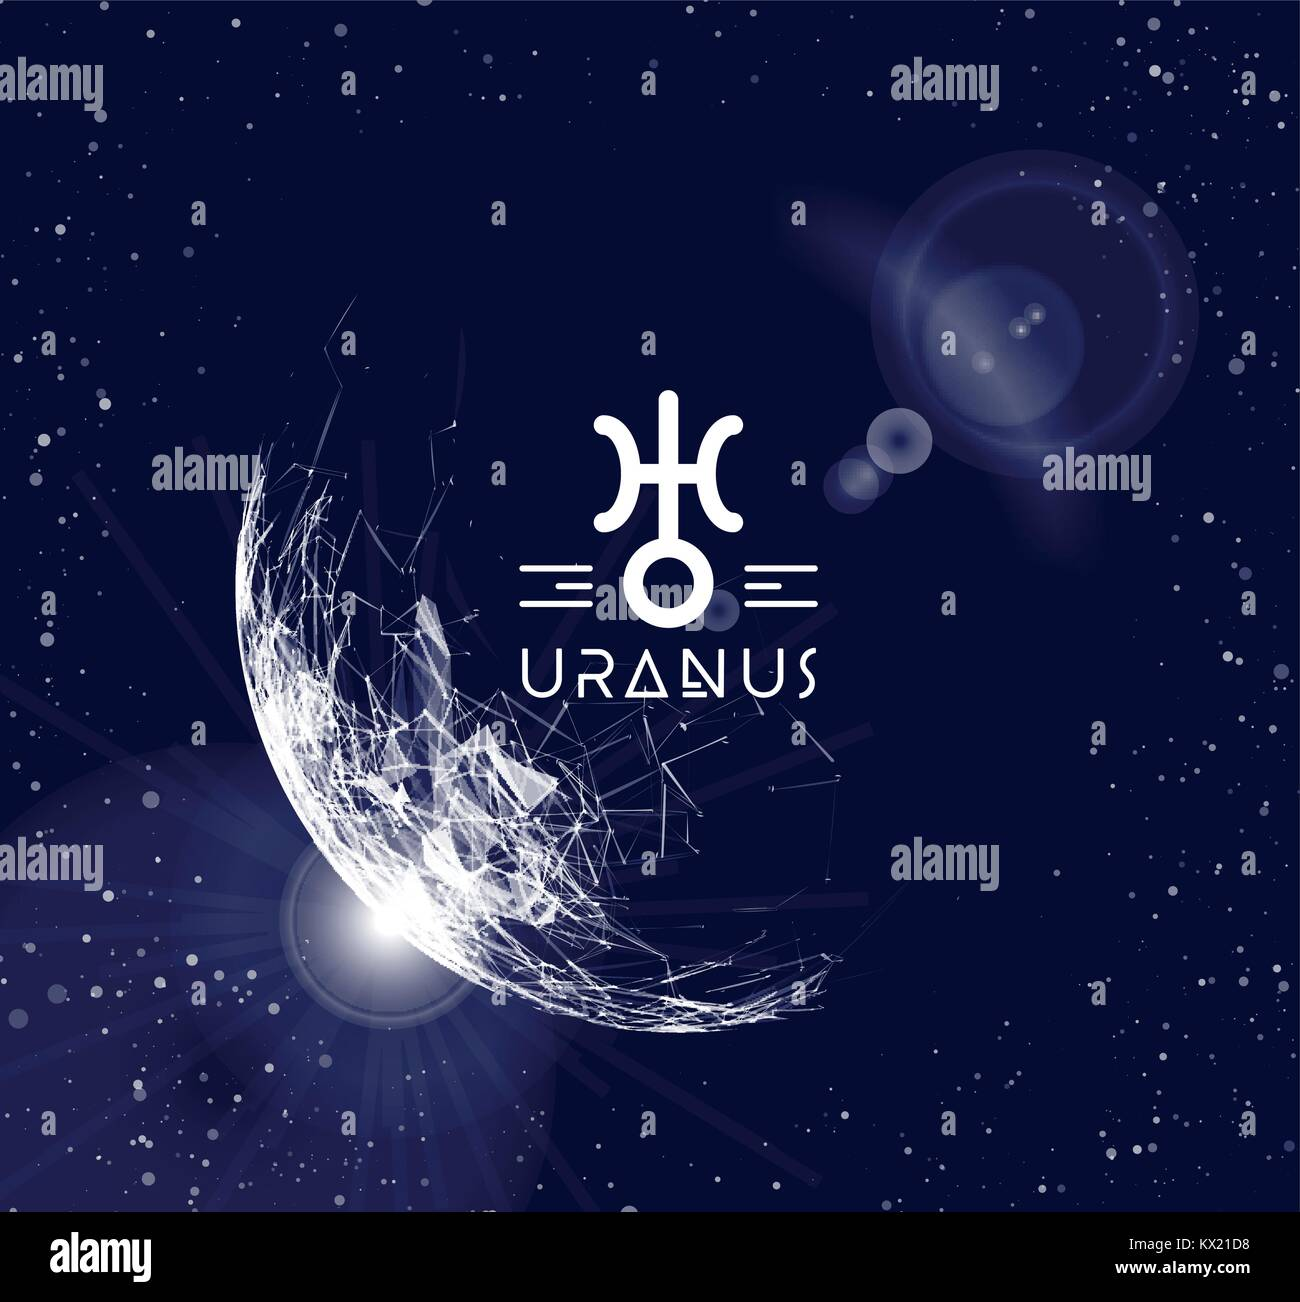 Planet Uranus in the form of polygonal mesh elements in the